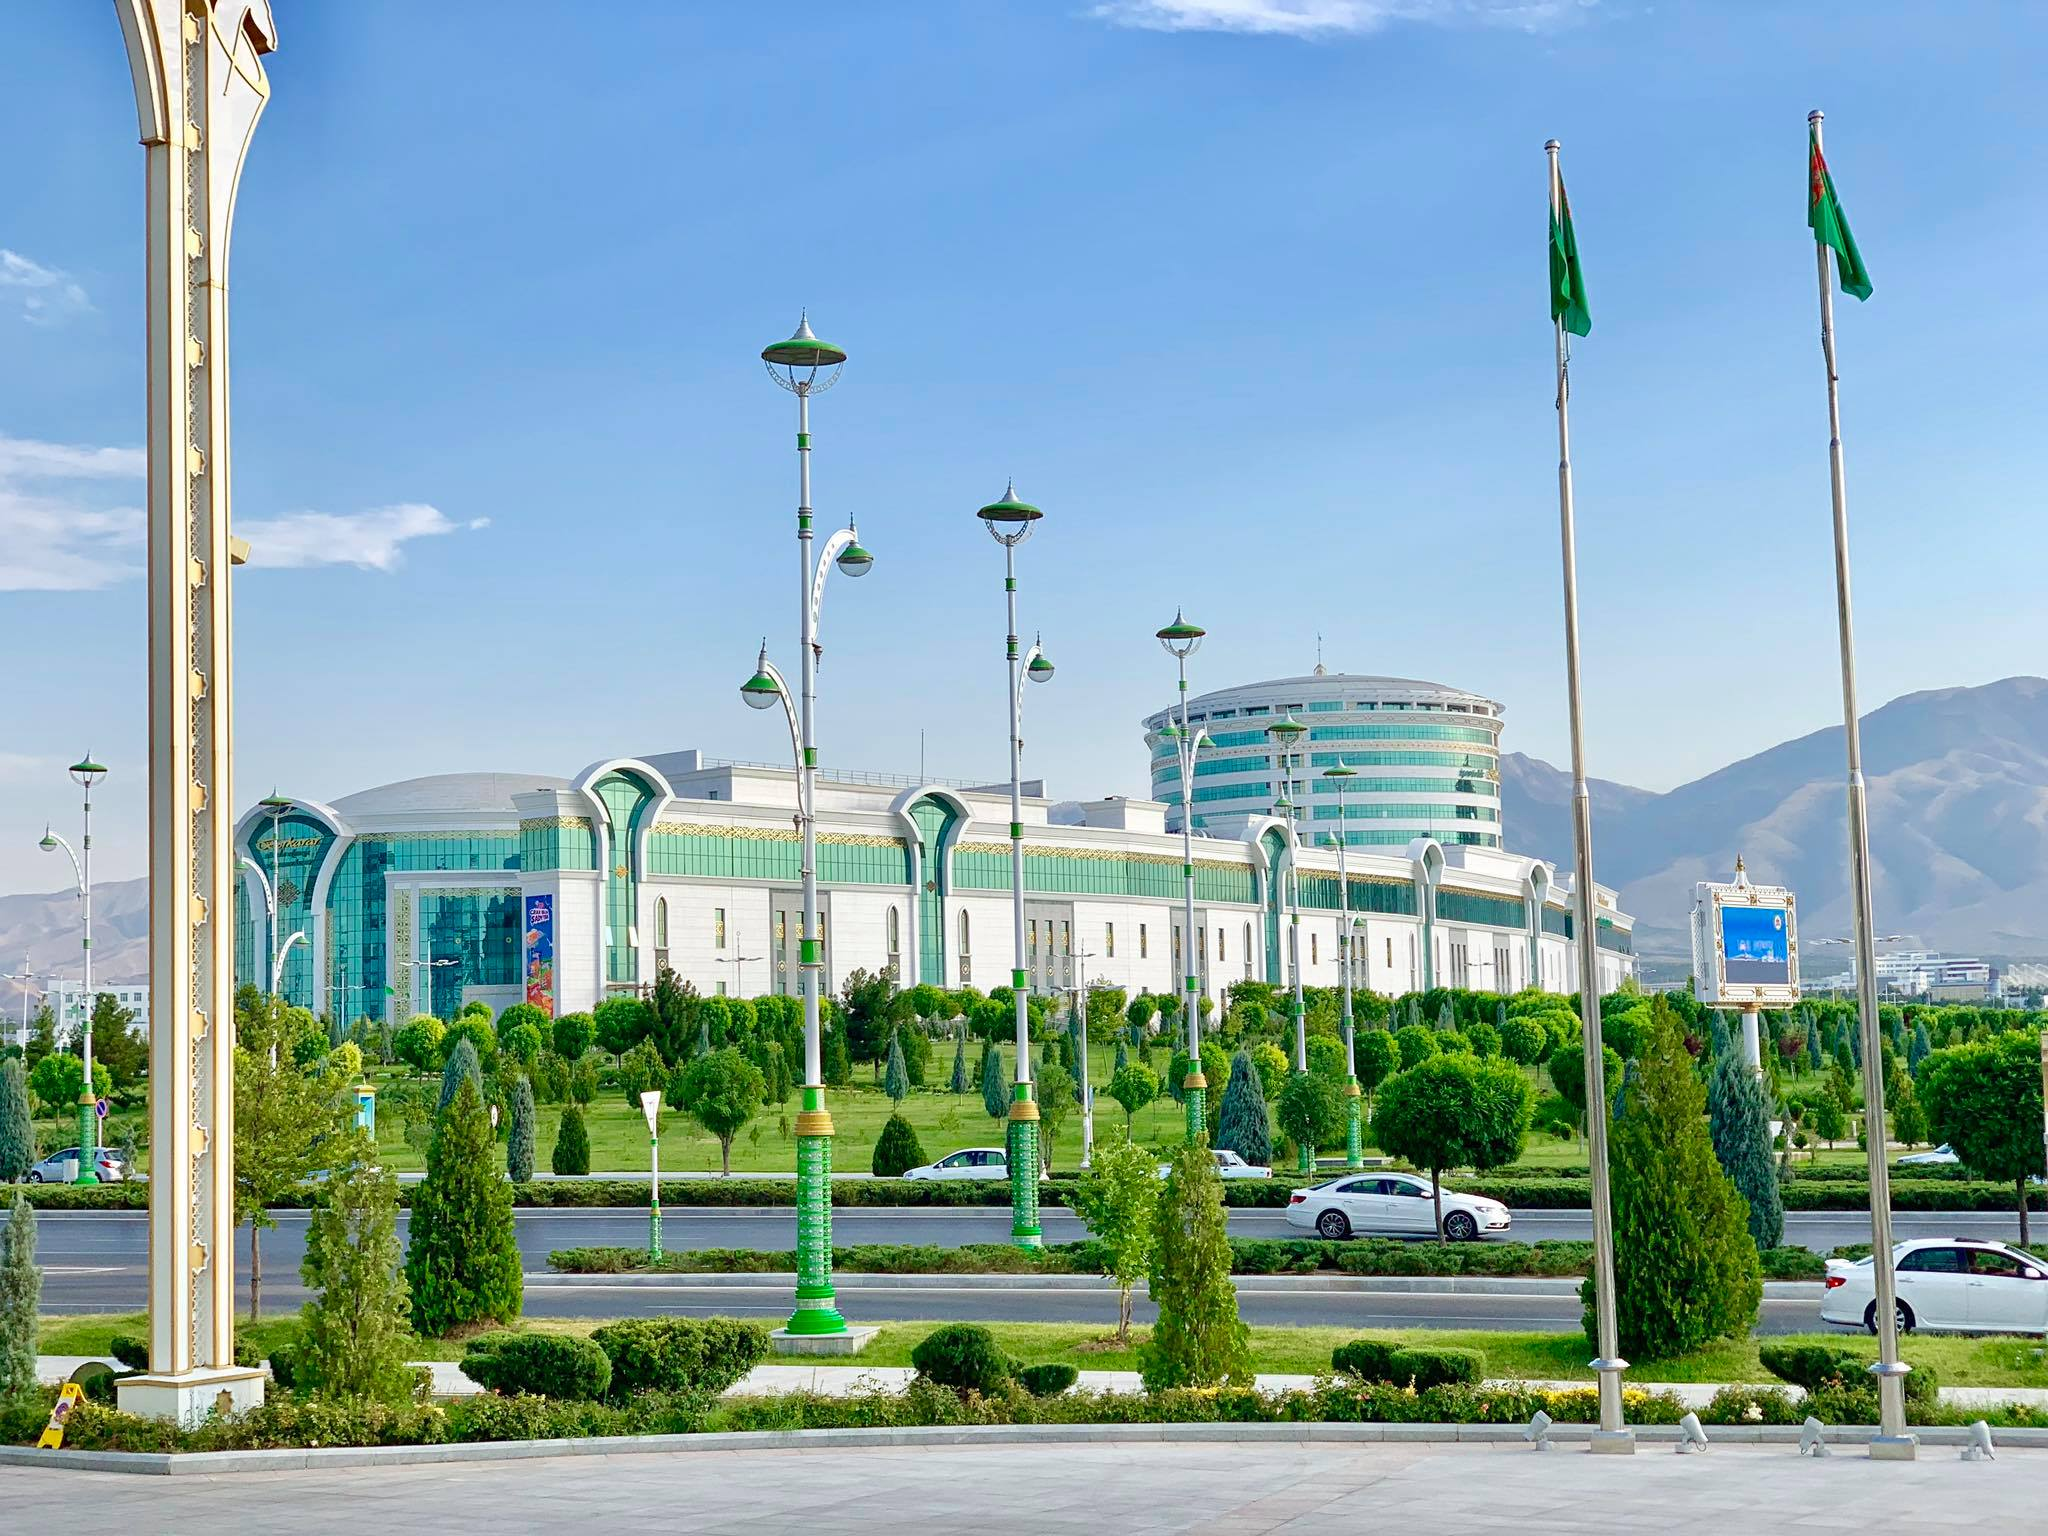 Kach Solo Travels in 2019 My last day in Turkmenistan21.jpg